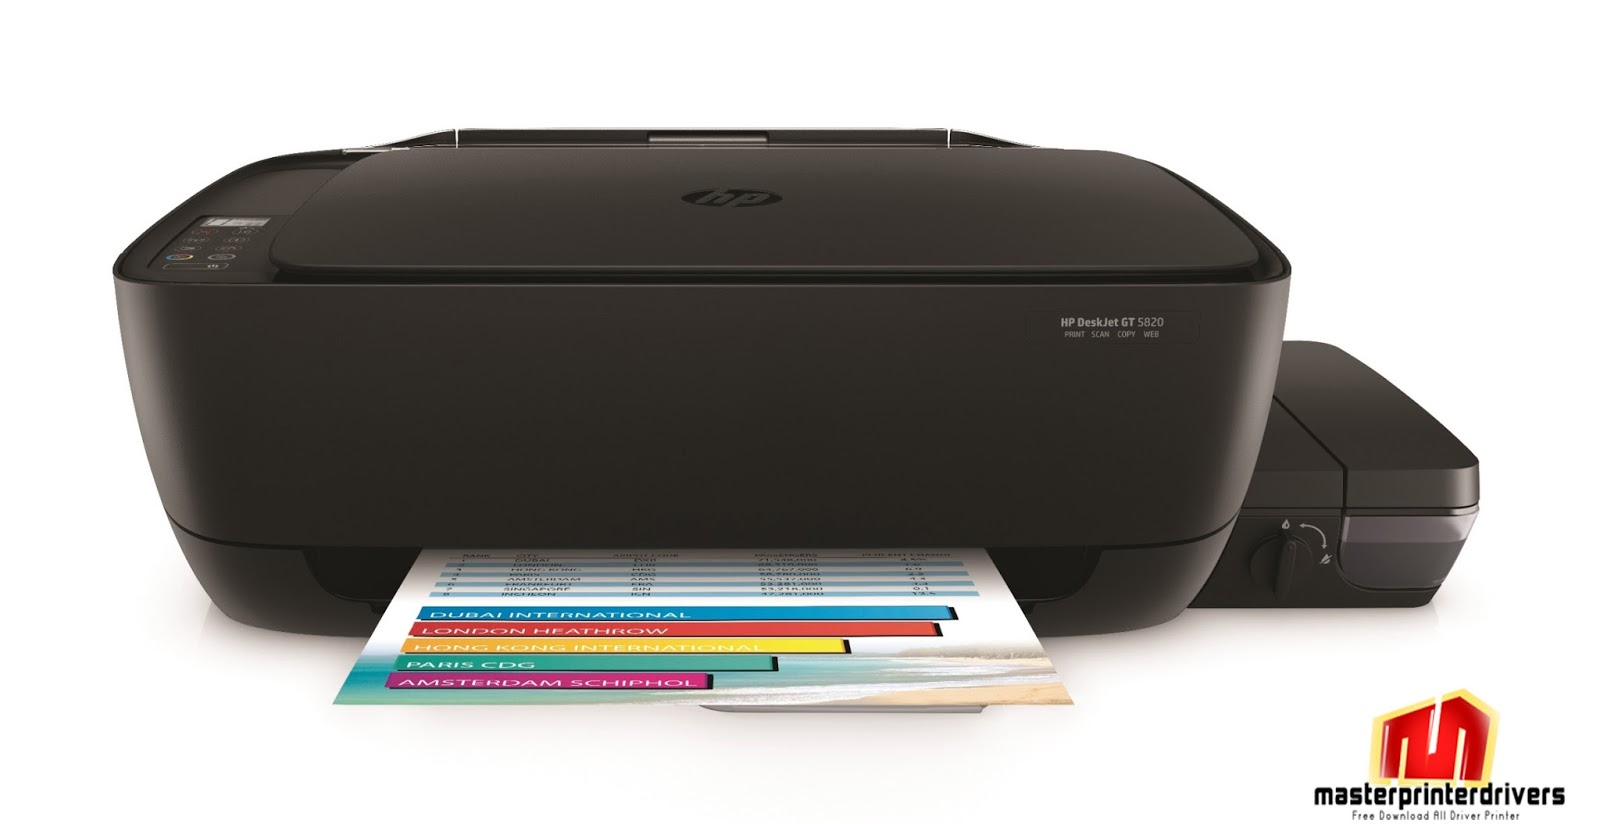 Hp Deskjet Gt 5820 Driver Download